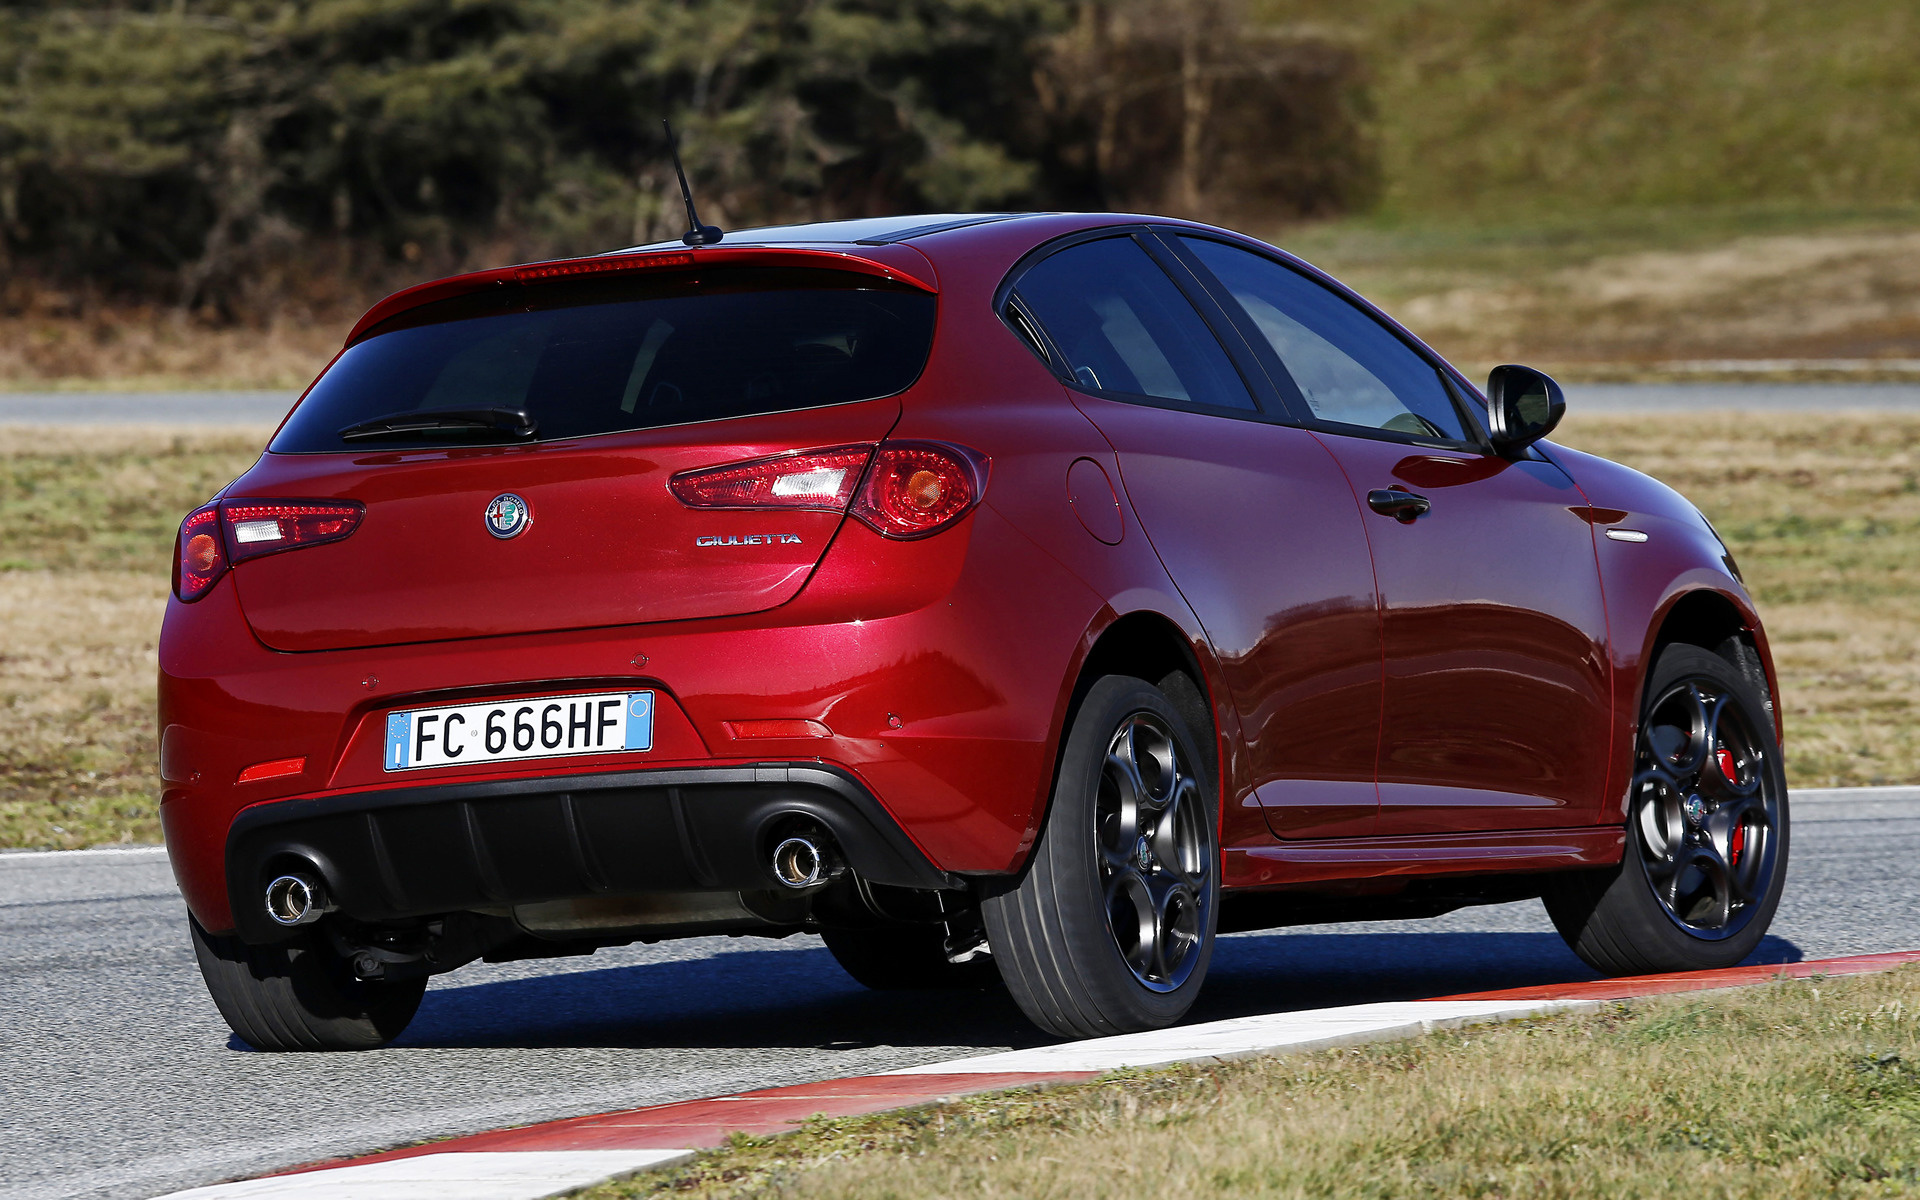 Alfa Romeo Giulietta >> 2016 Alfa Romeo Giulietta Veloce Pack - Wallpapers and HD ...